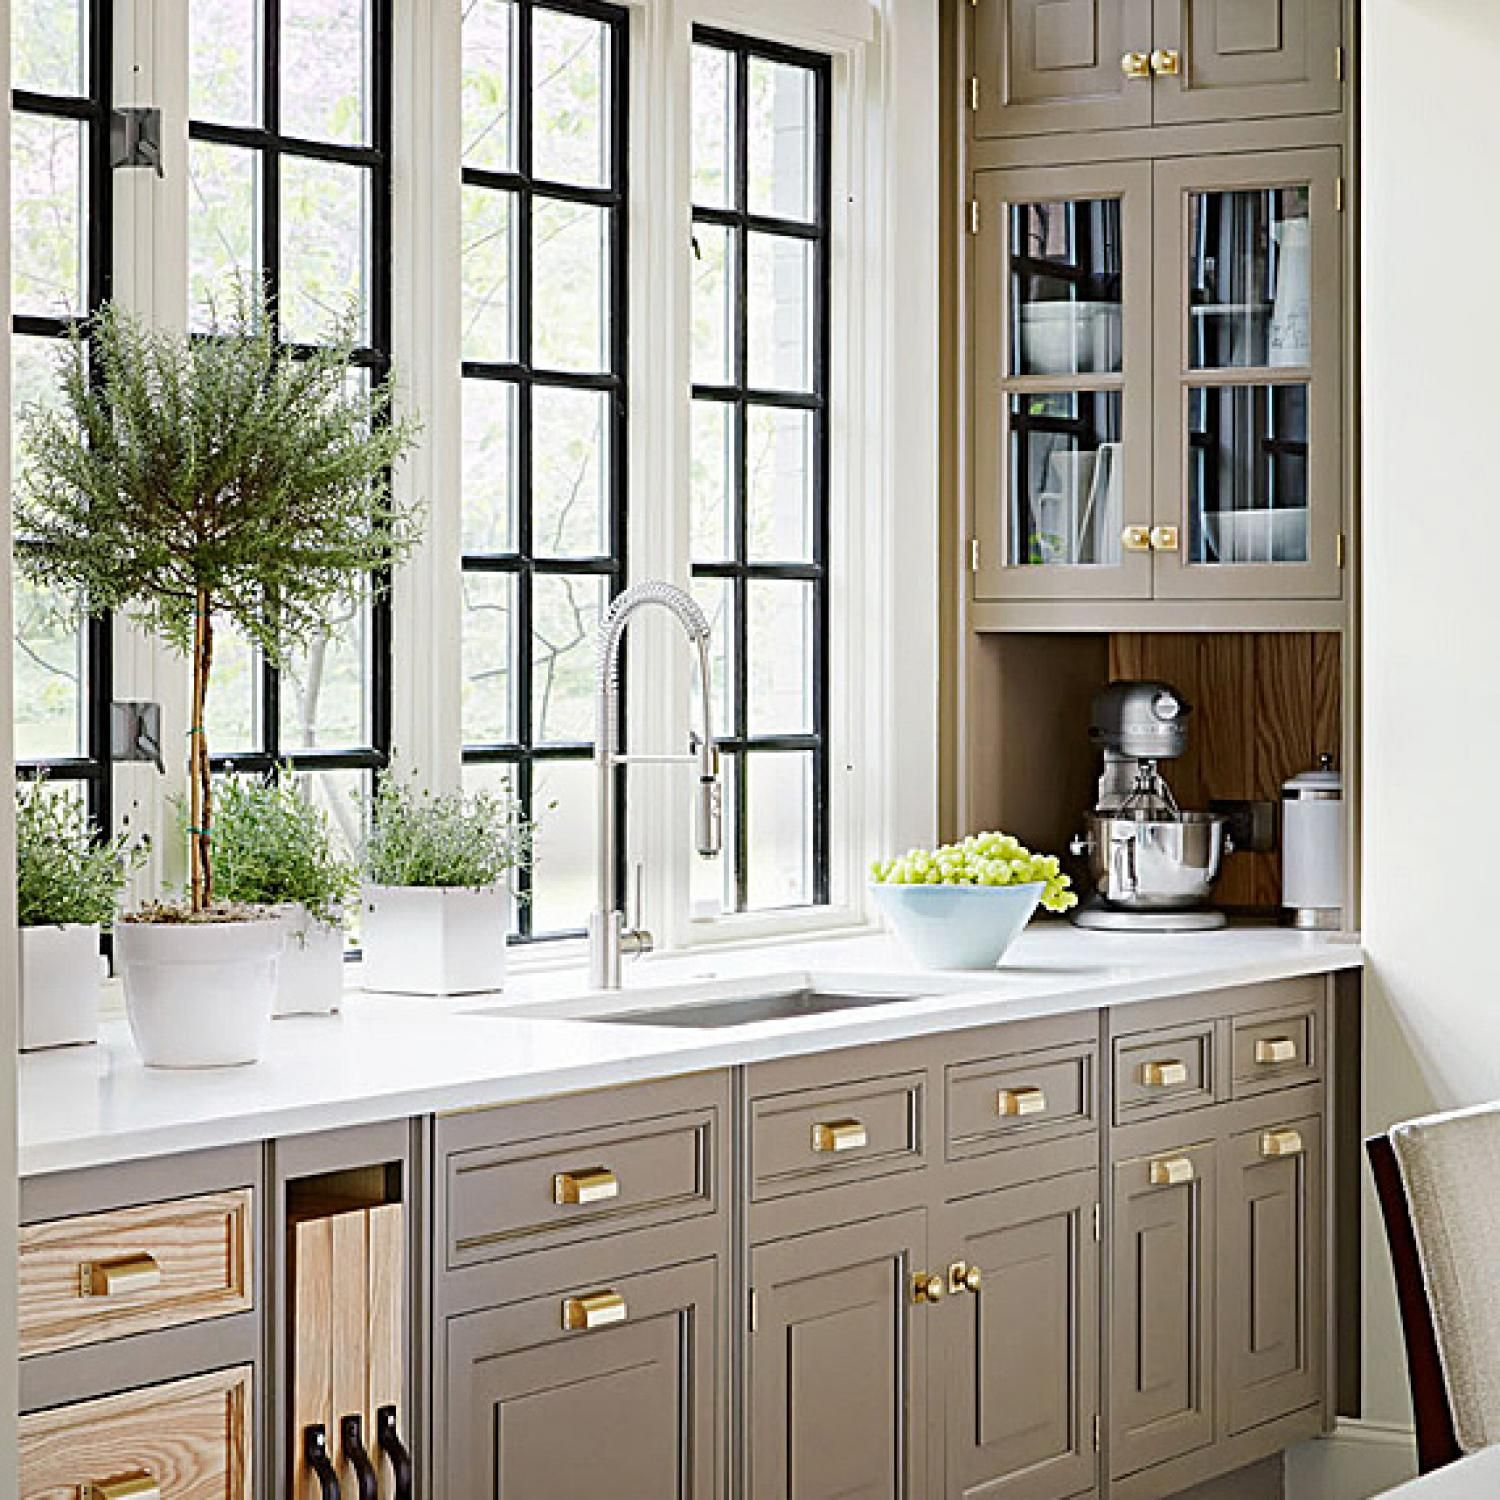 Showhouse Kitchen Designed by Christopher Peacock | 21st century ...